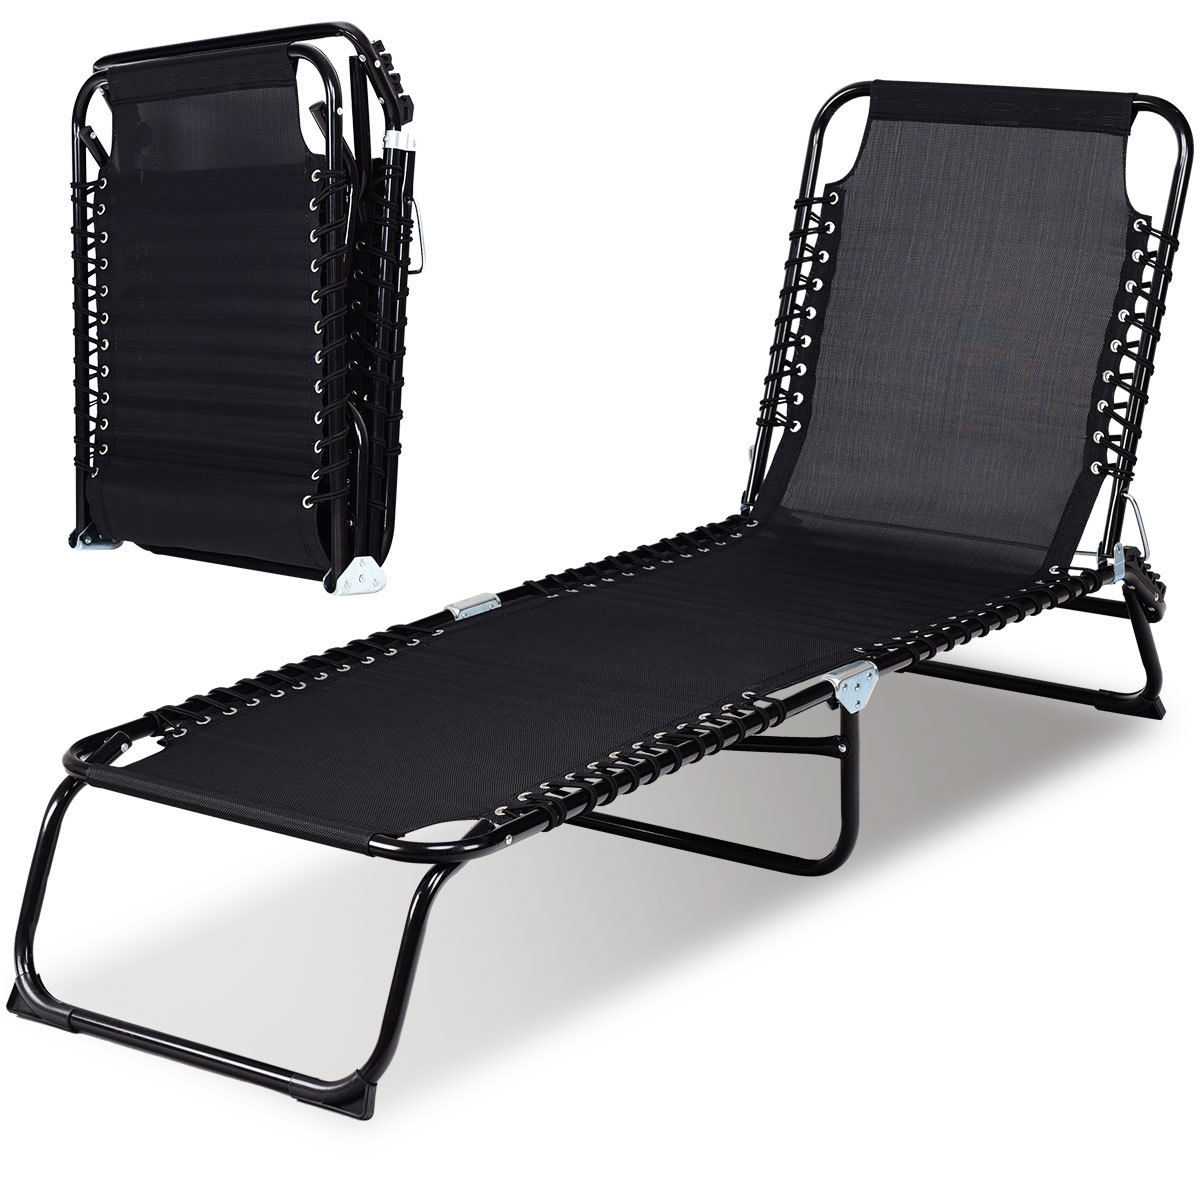 Gymax Foldable 3 Positions Camping Cot Patio Chaise Lounge Chair Leisure Bed Yard